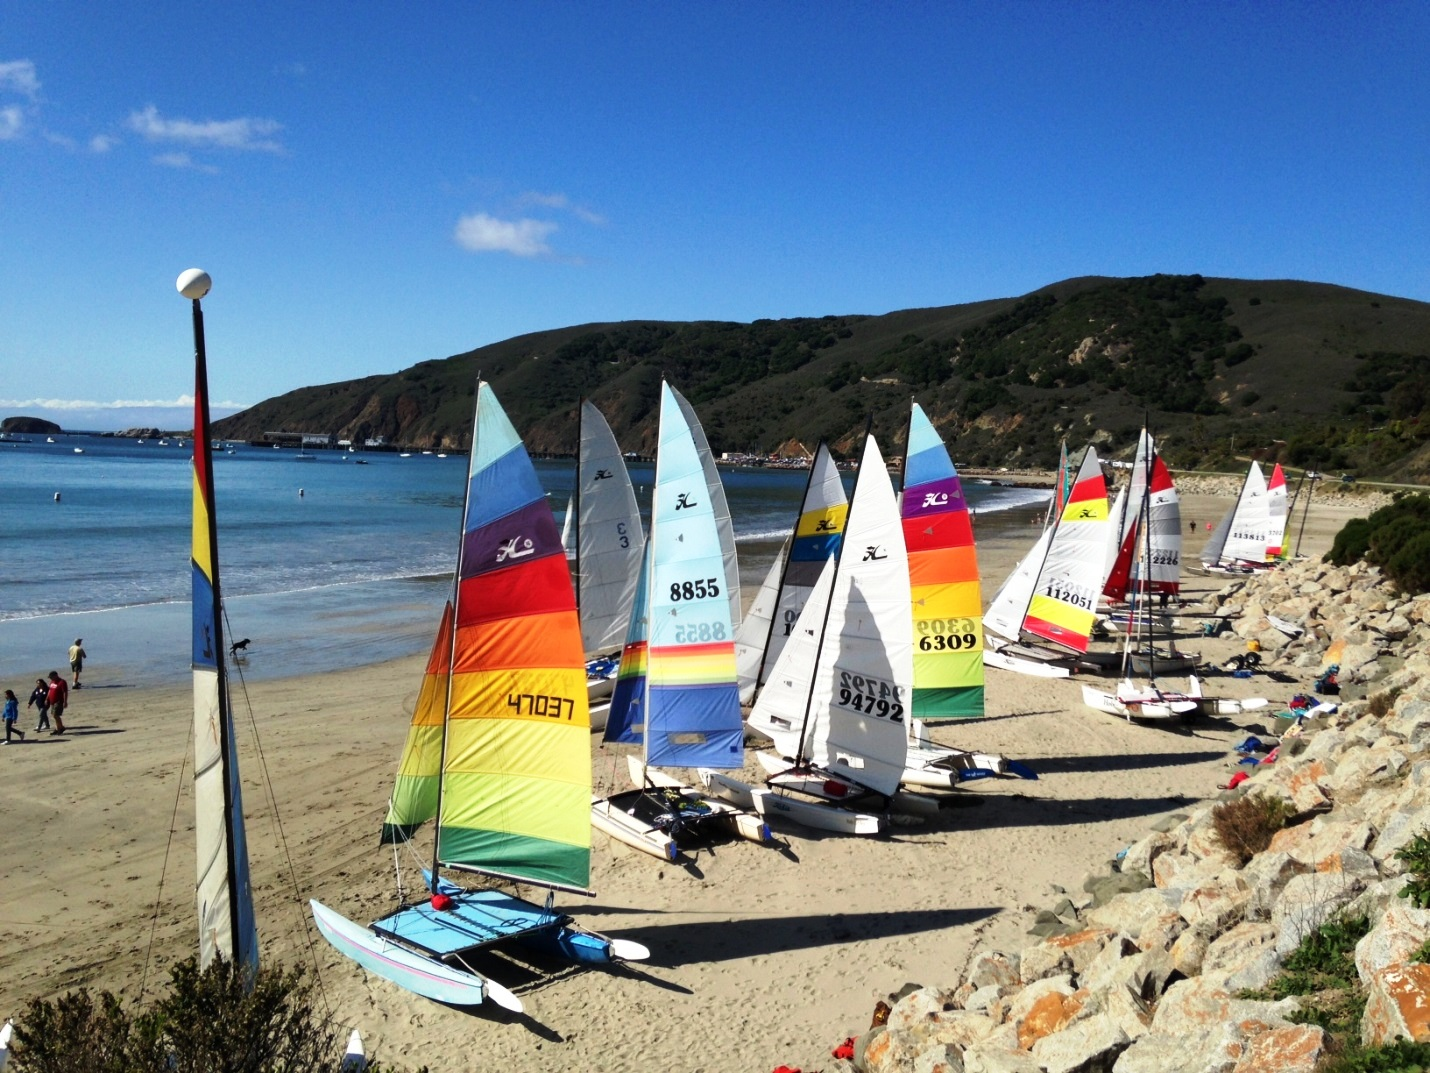 Catamarans on Olde Port Beach